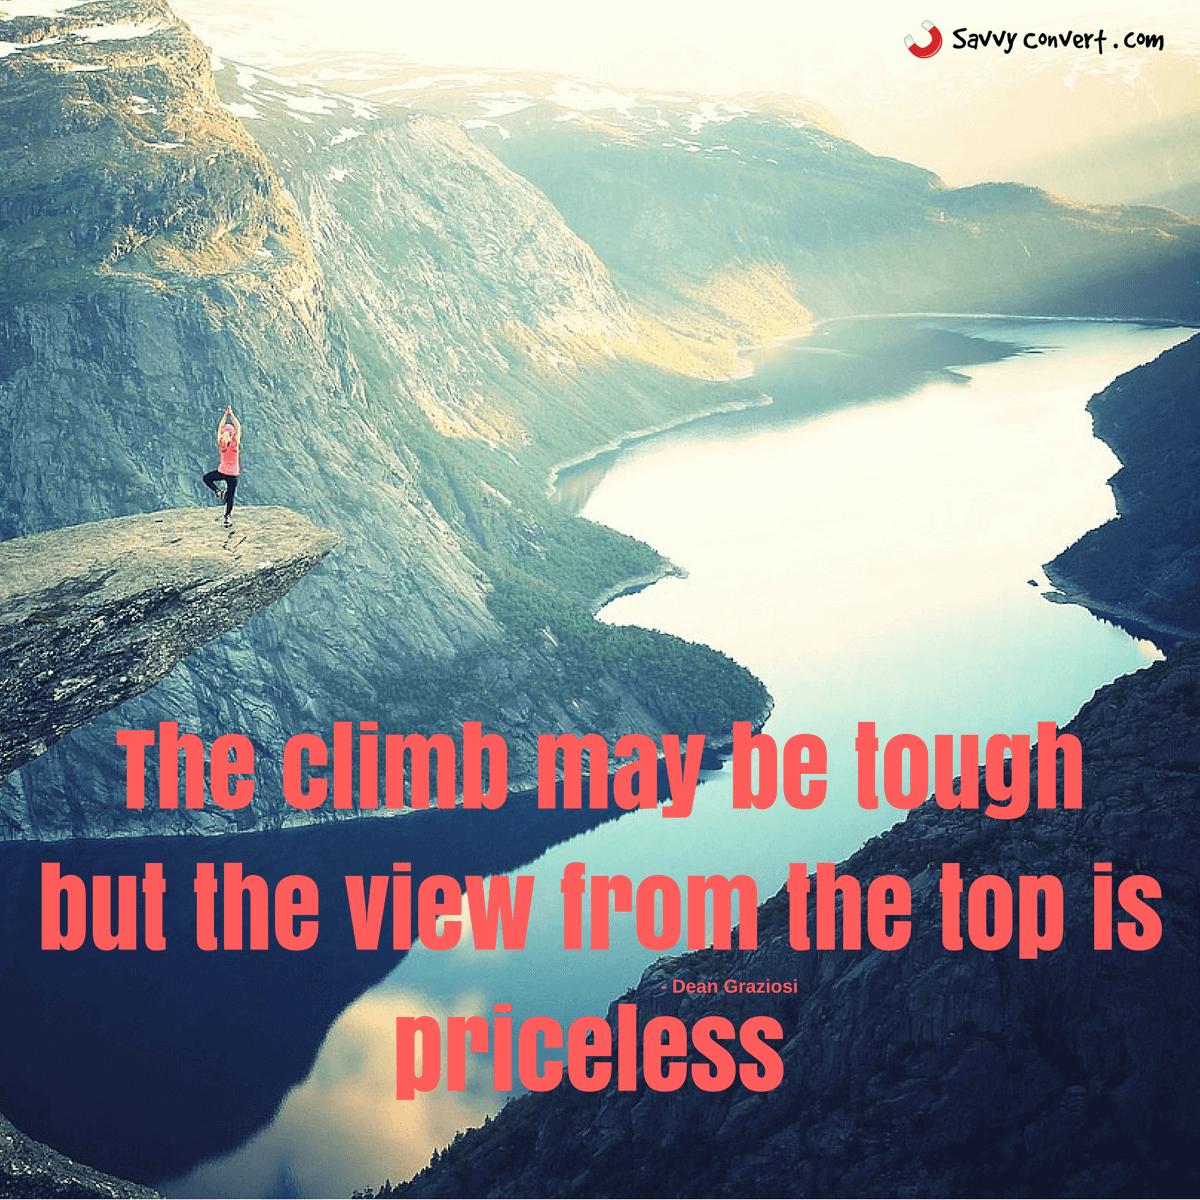 The Climb May Be Tough But The View From The Top Is Priceless